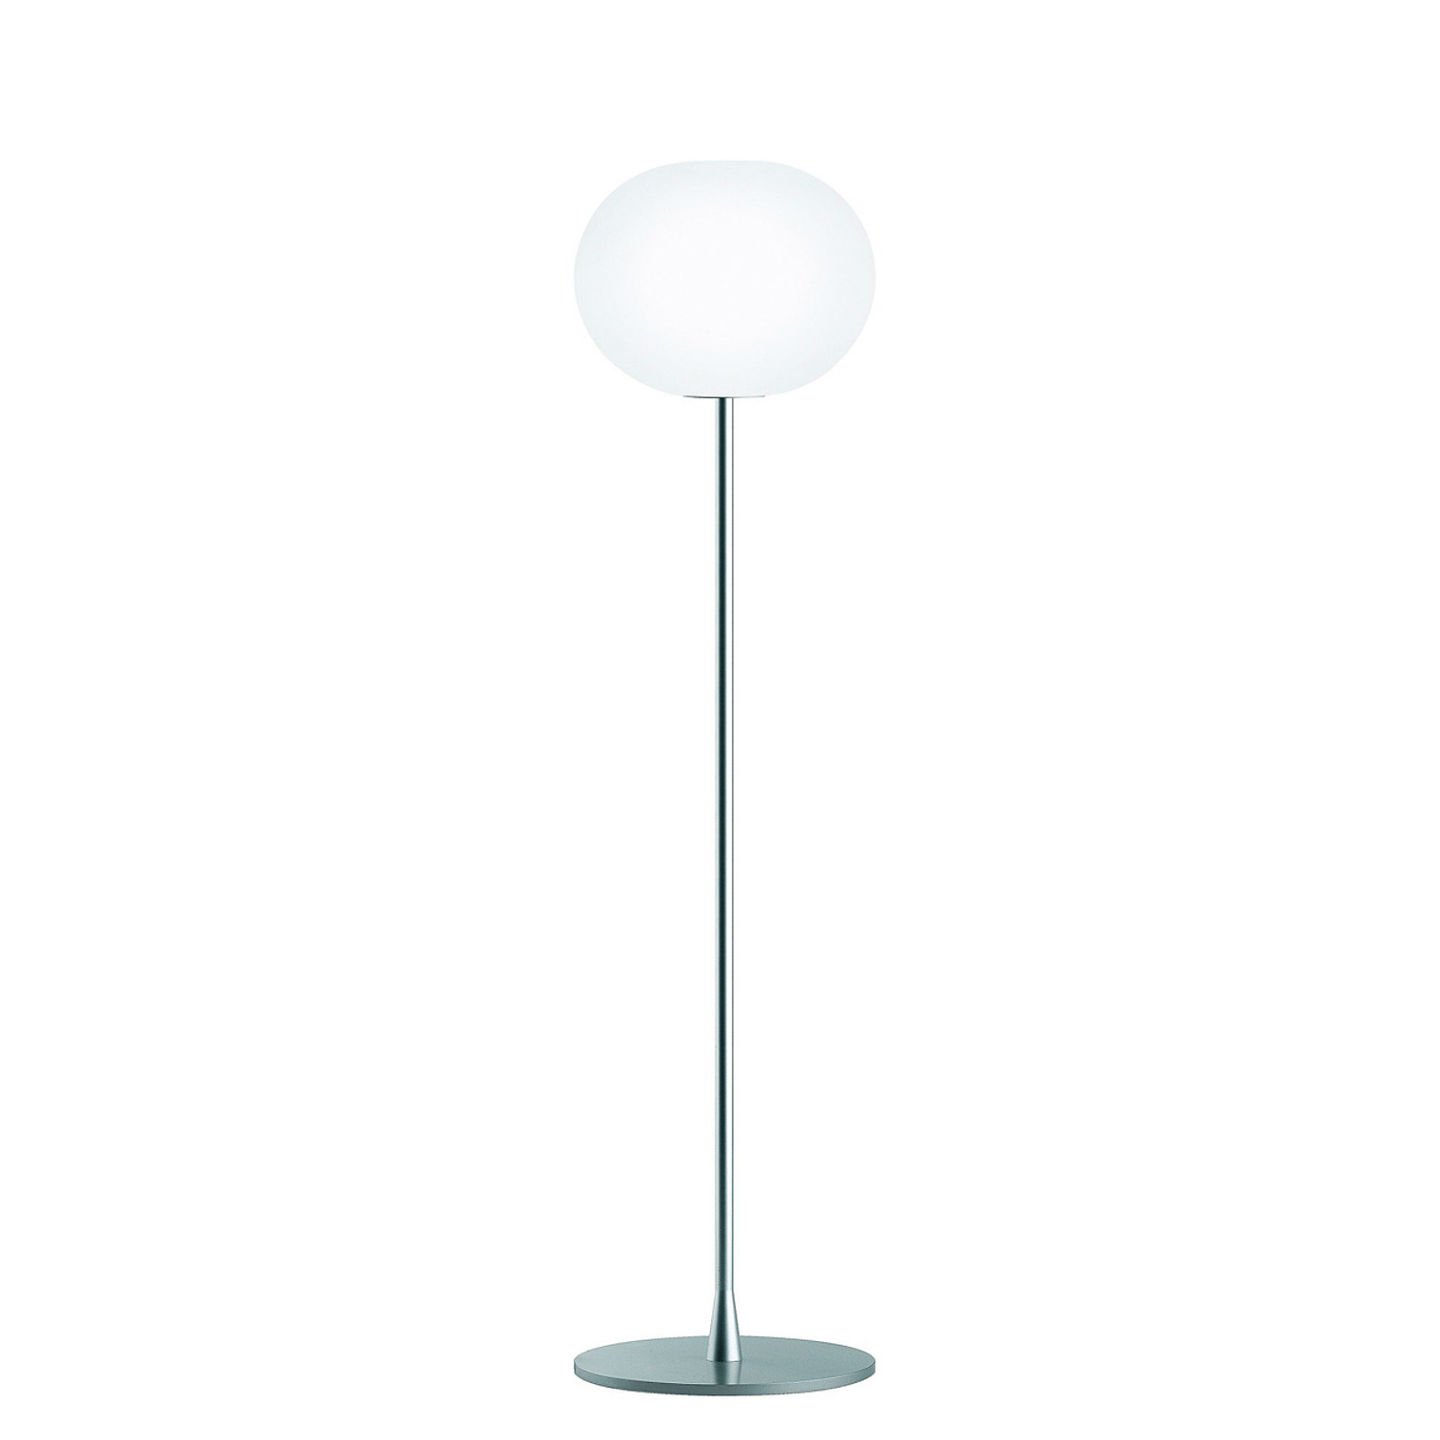 Glo Ball F2 Floor Lamp 175cm E27 150W - Silver mate